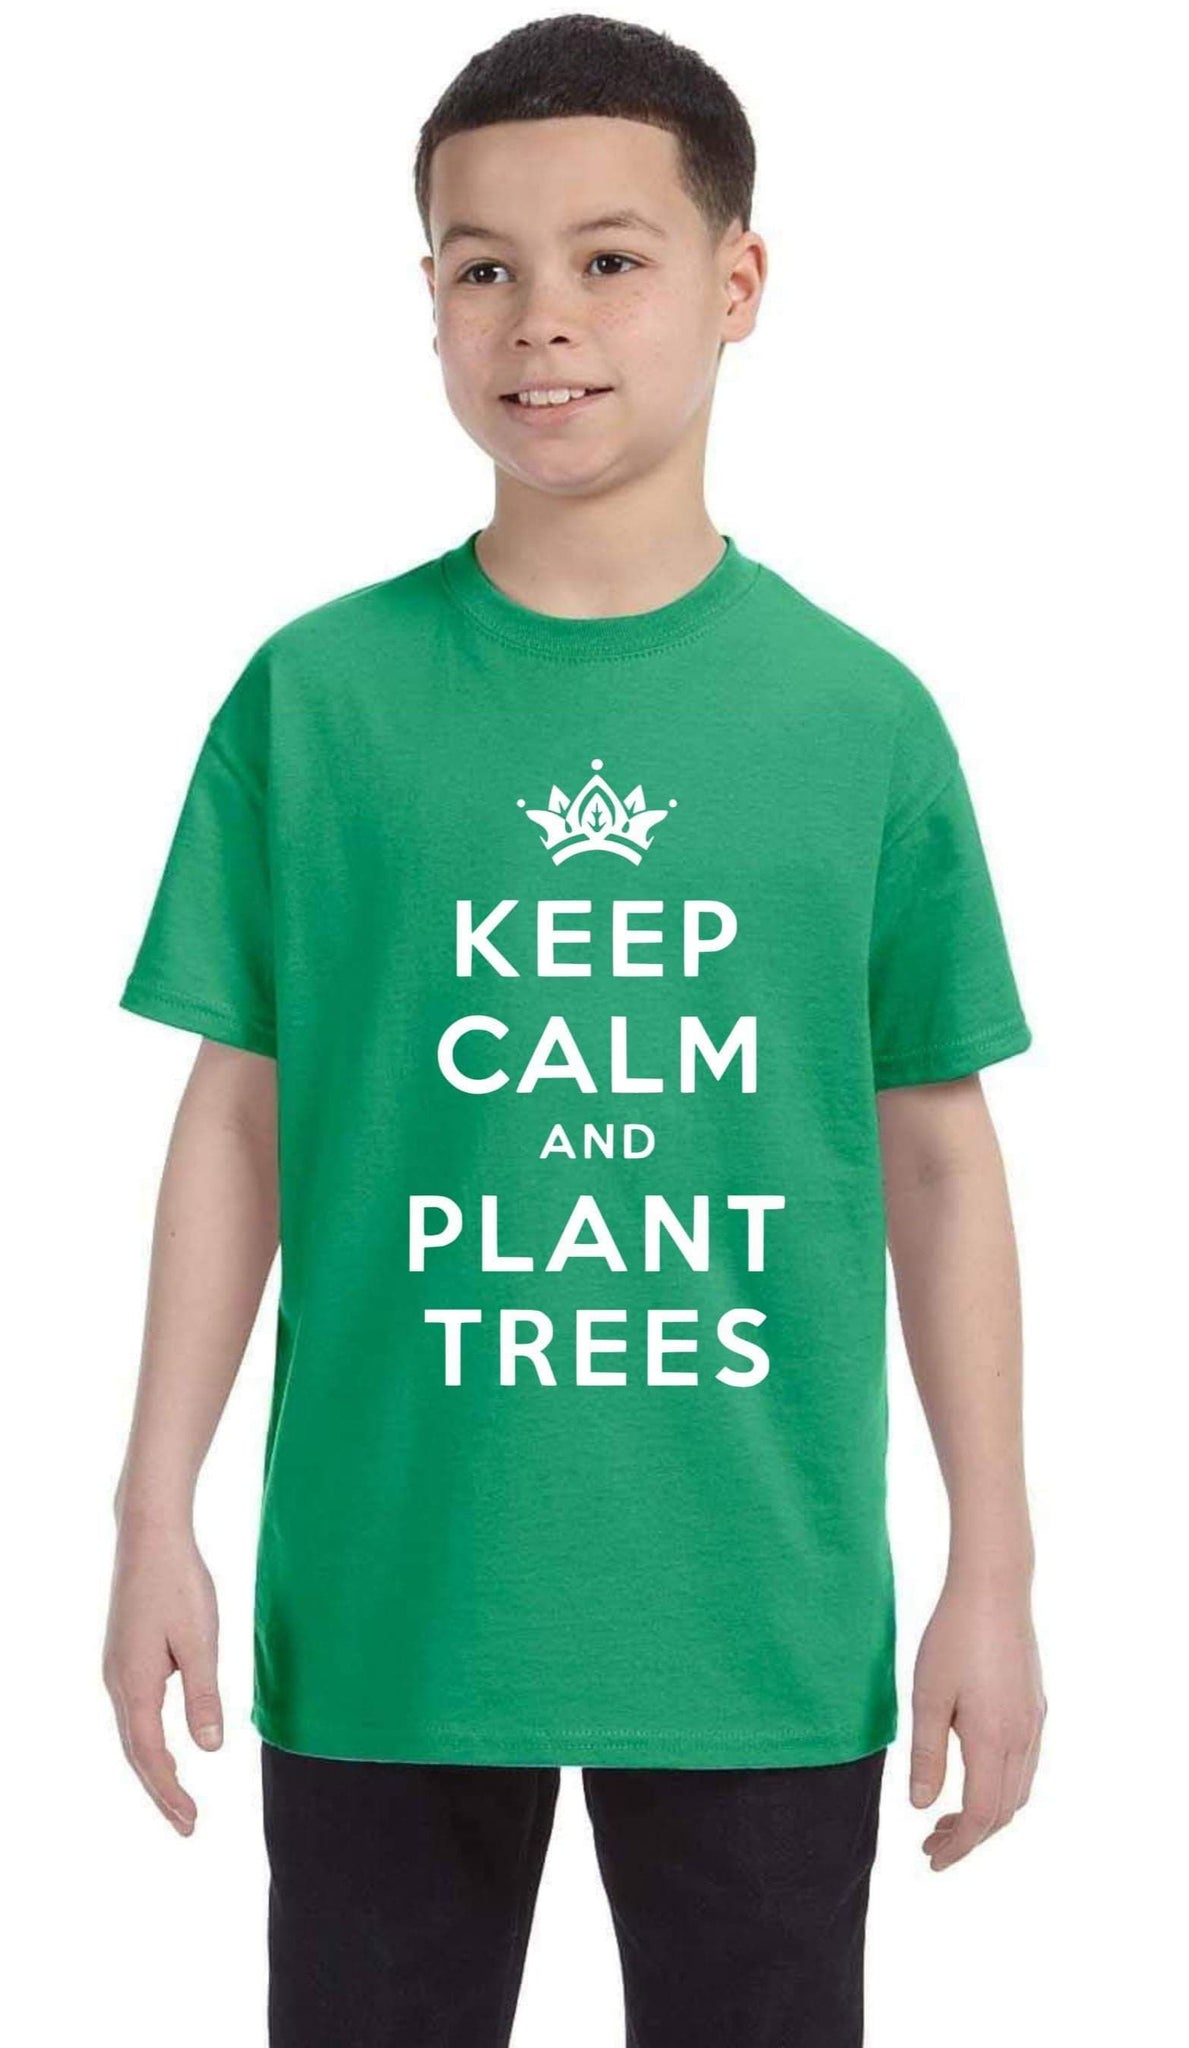 Kid's OneTree Shirt